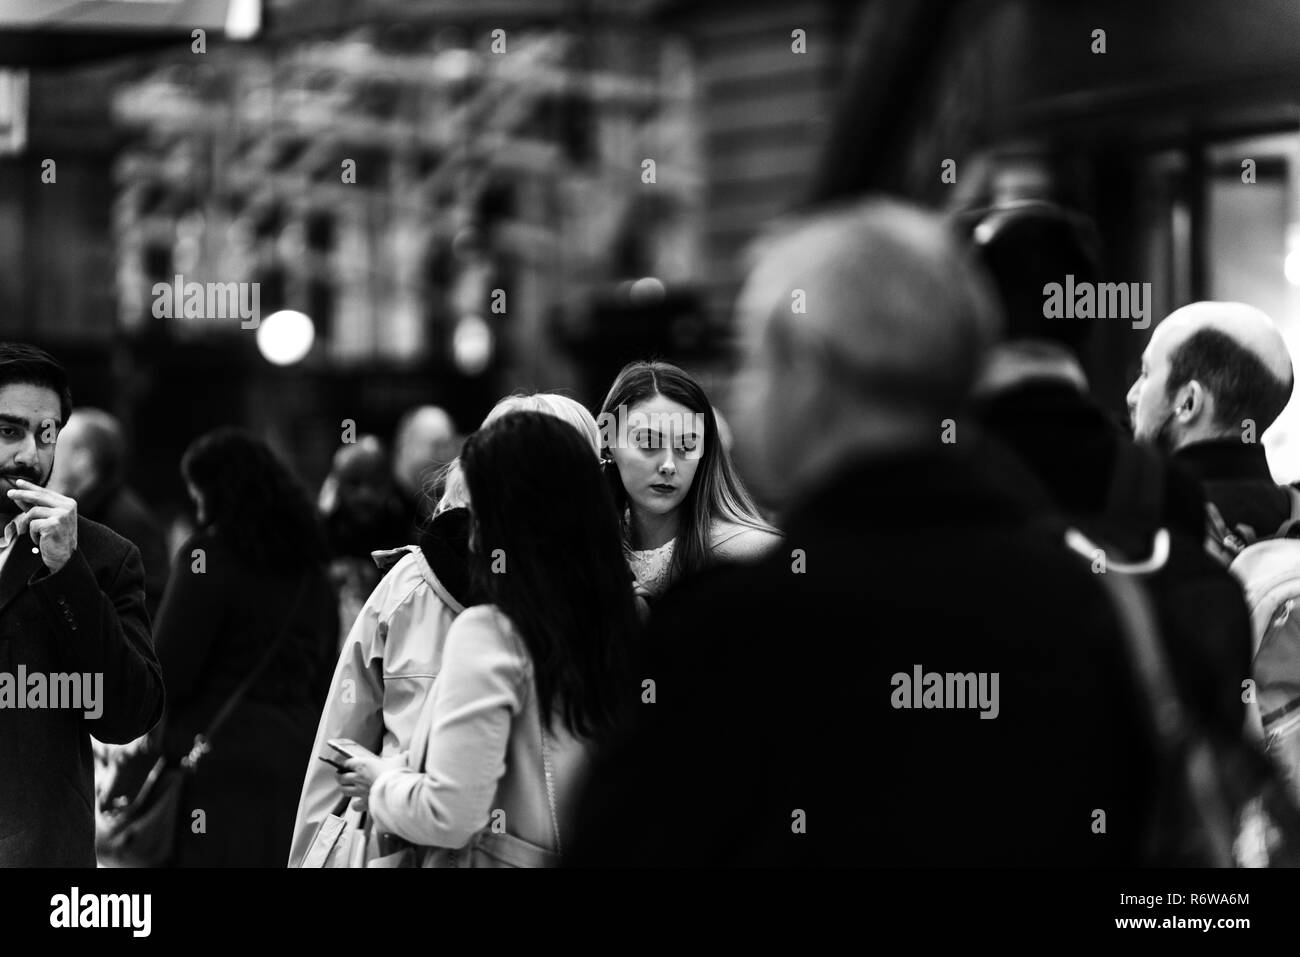 This image was shot in Glasgow City centre, Scotland during the busy rush hour. This were part of a college brief called rush hour for COGC. - Stock Image